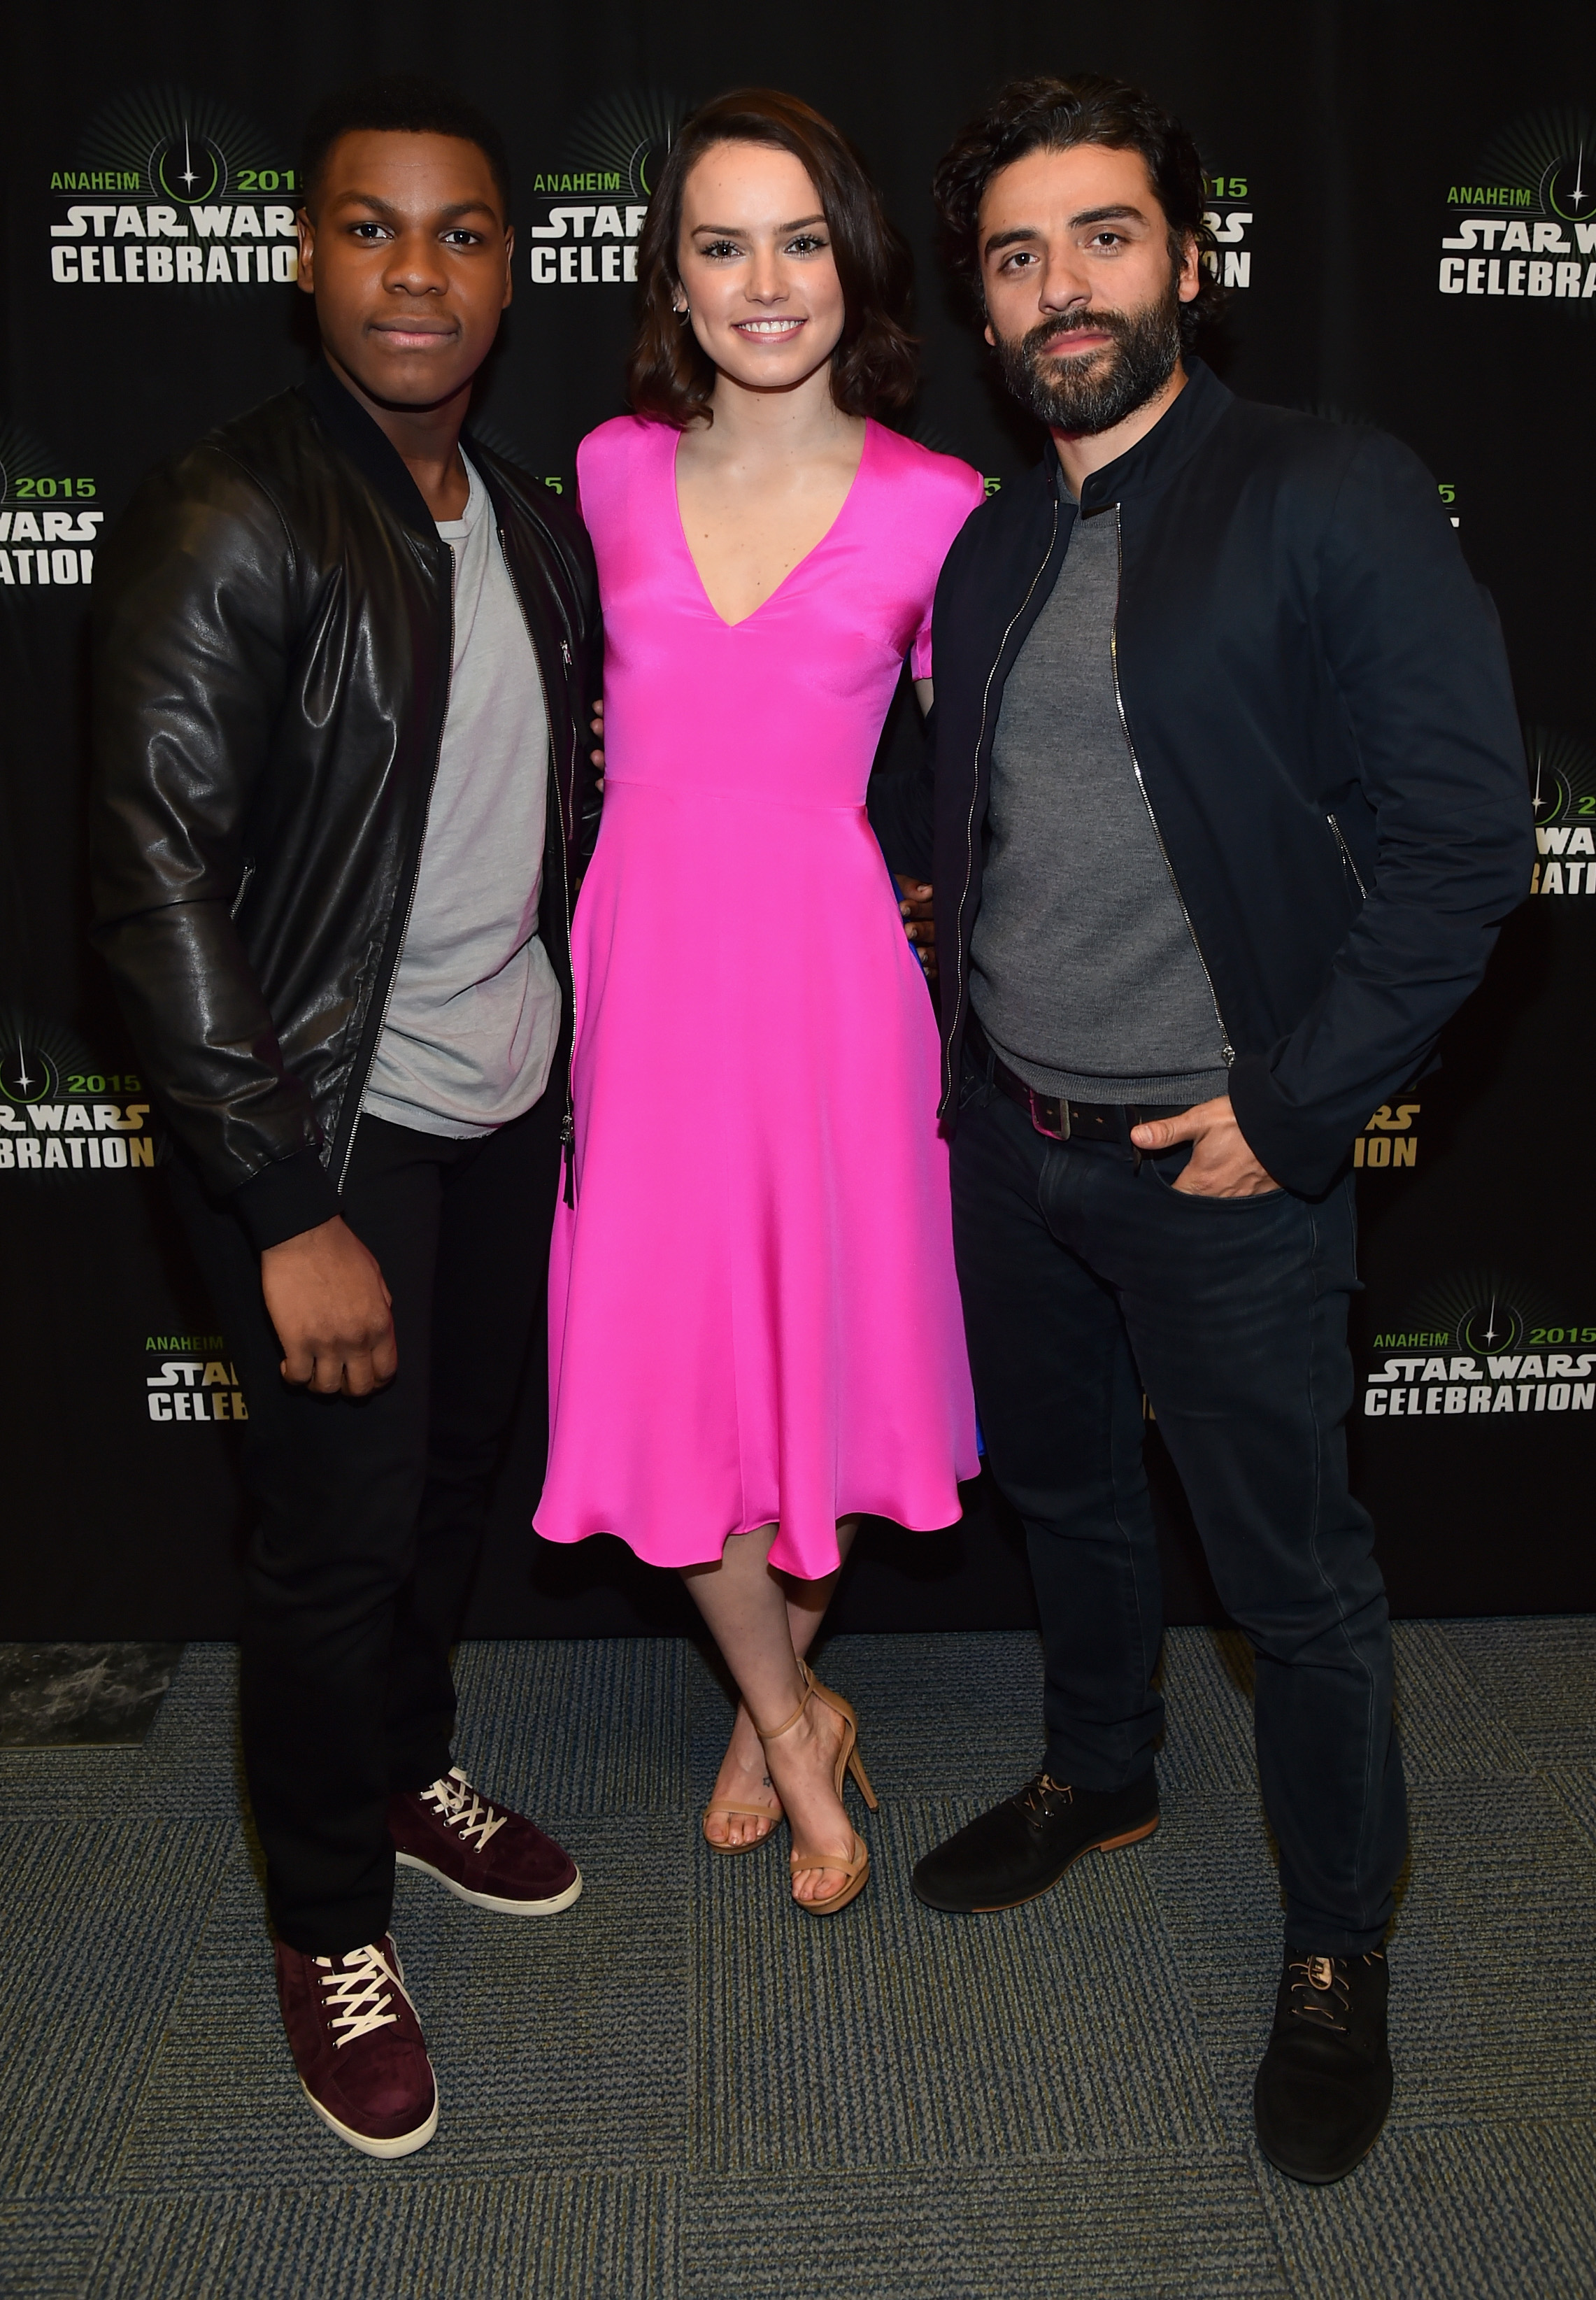 Oscar Isaac, margarita Ridley and John Boyega at The estrella Wars Celebration